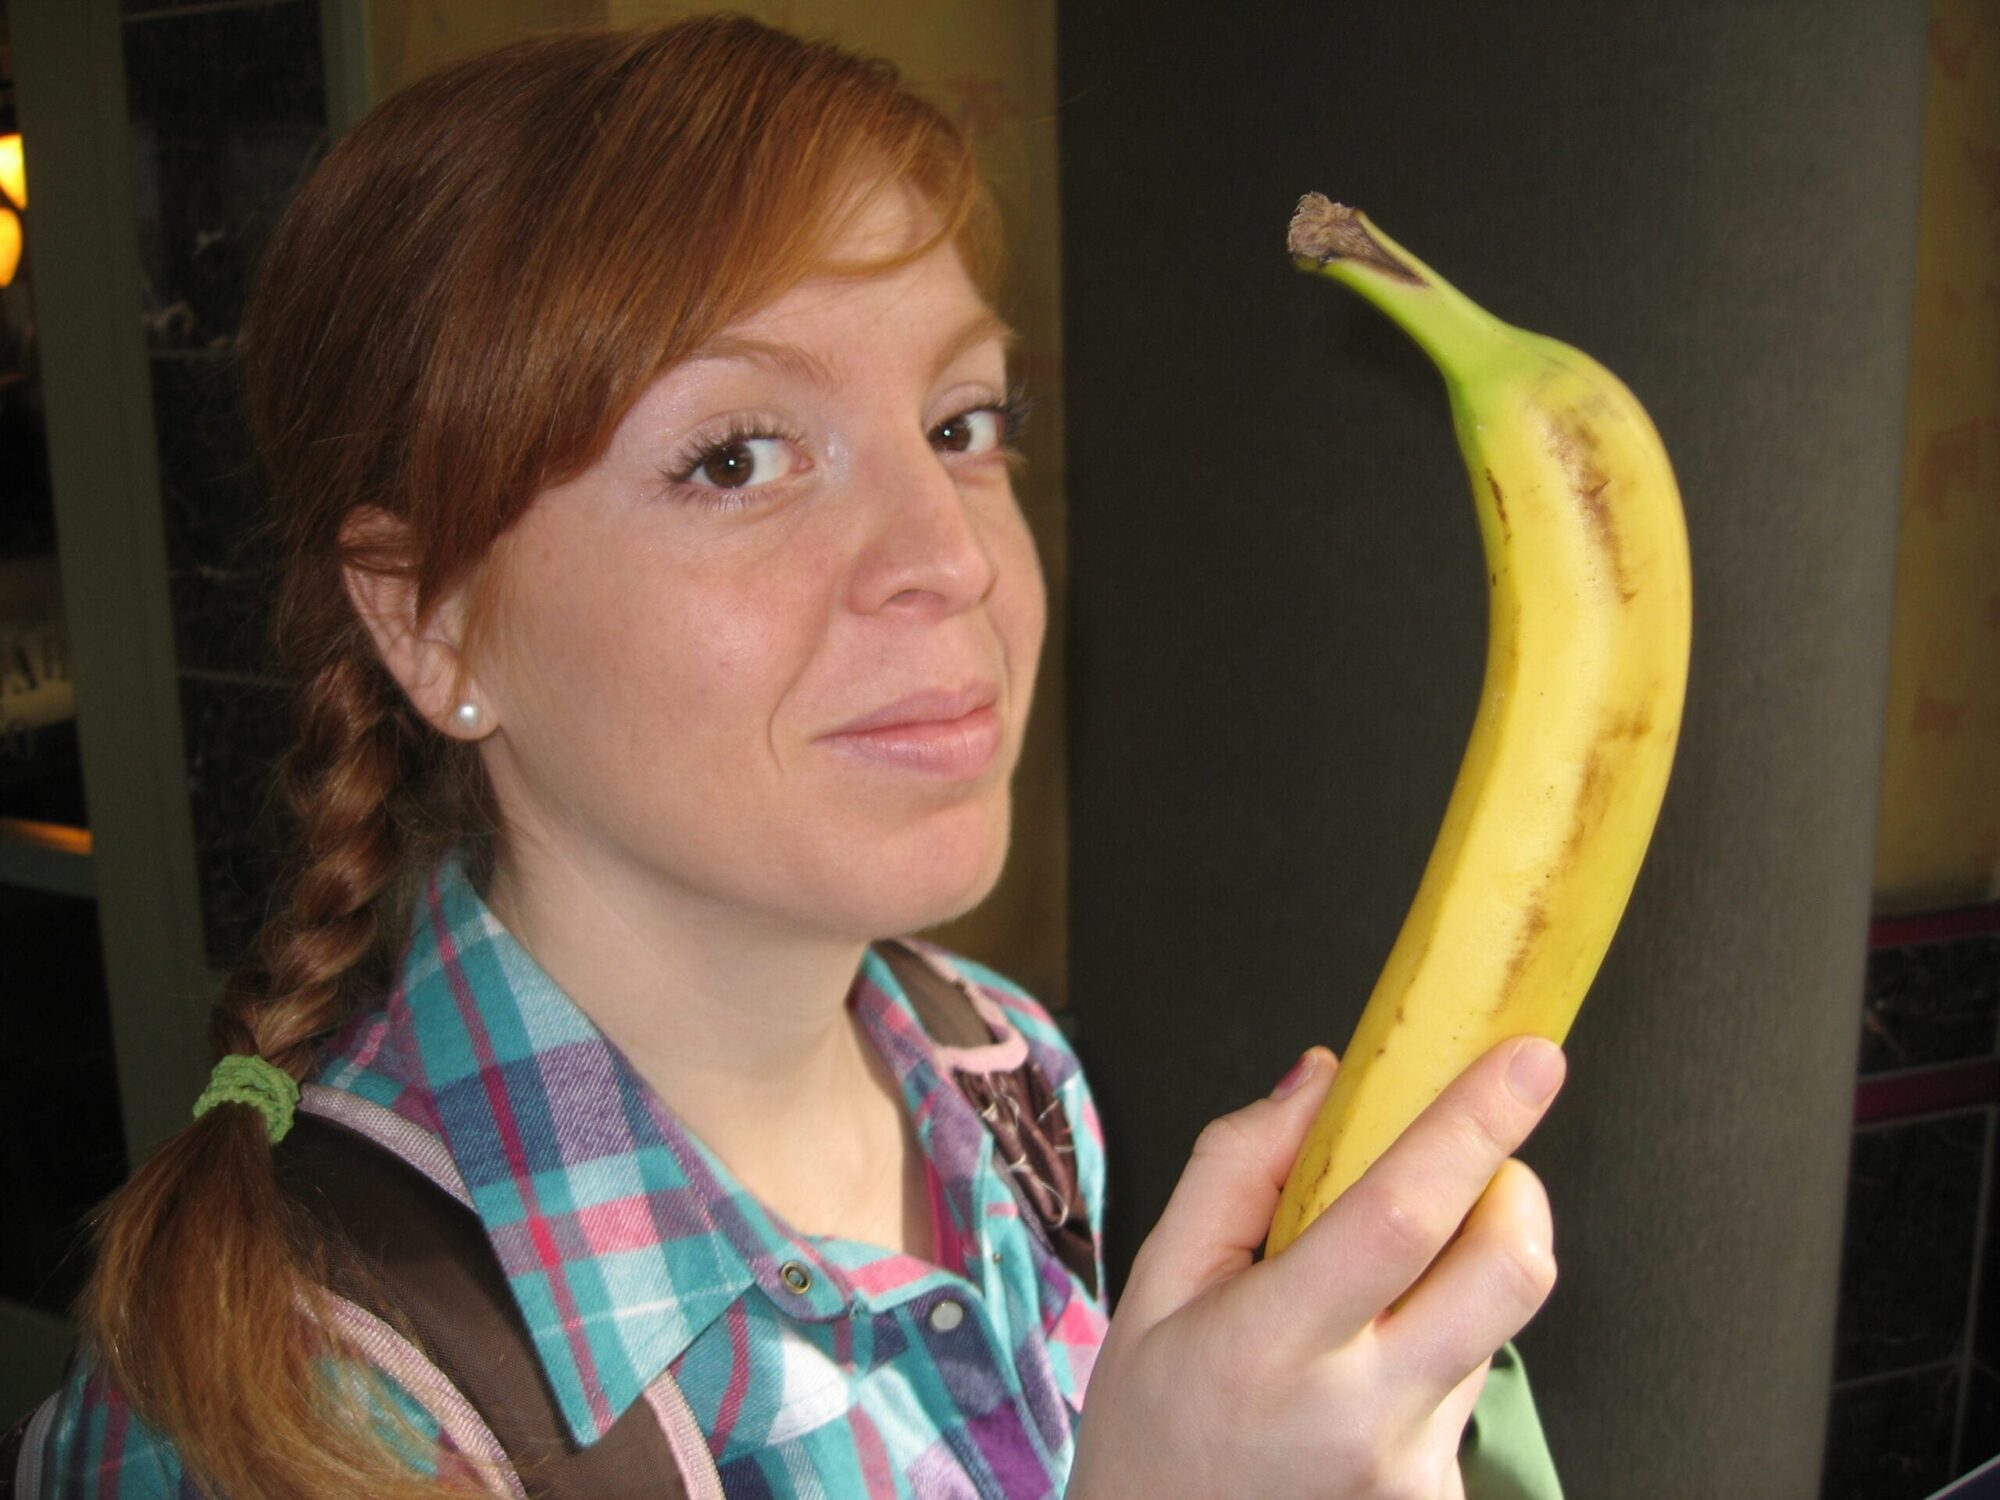 Is that a banana in your purse?